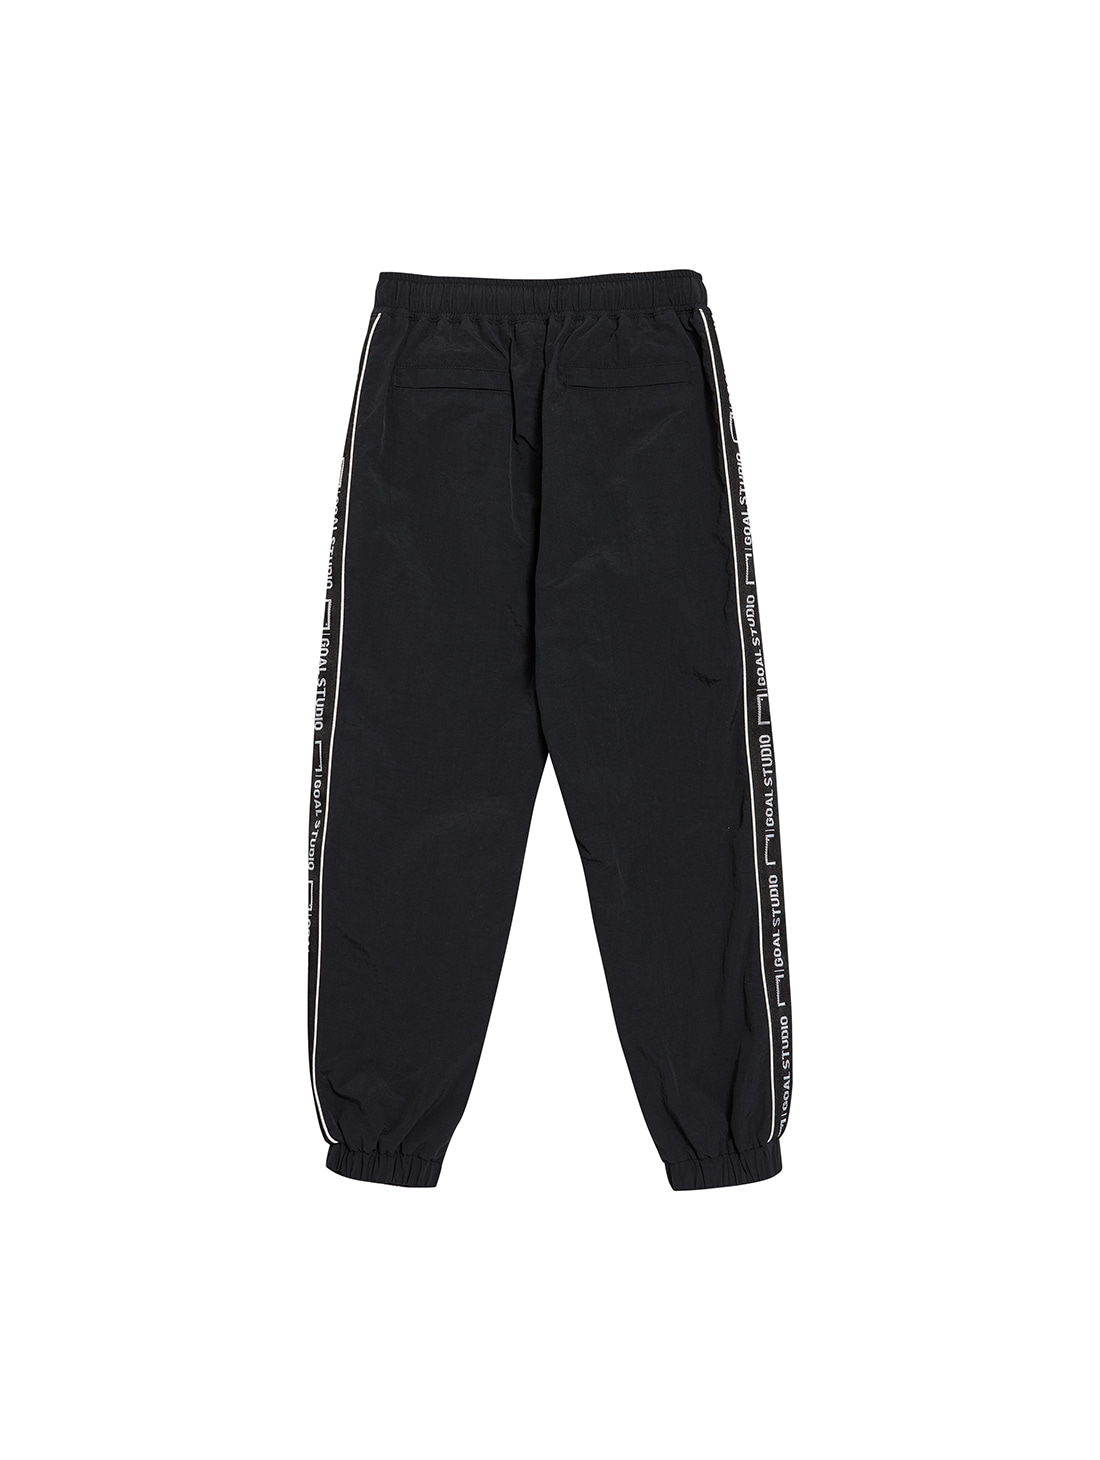 (KIDS) SMALL LOGO TRACK PANTS - BLACK